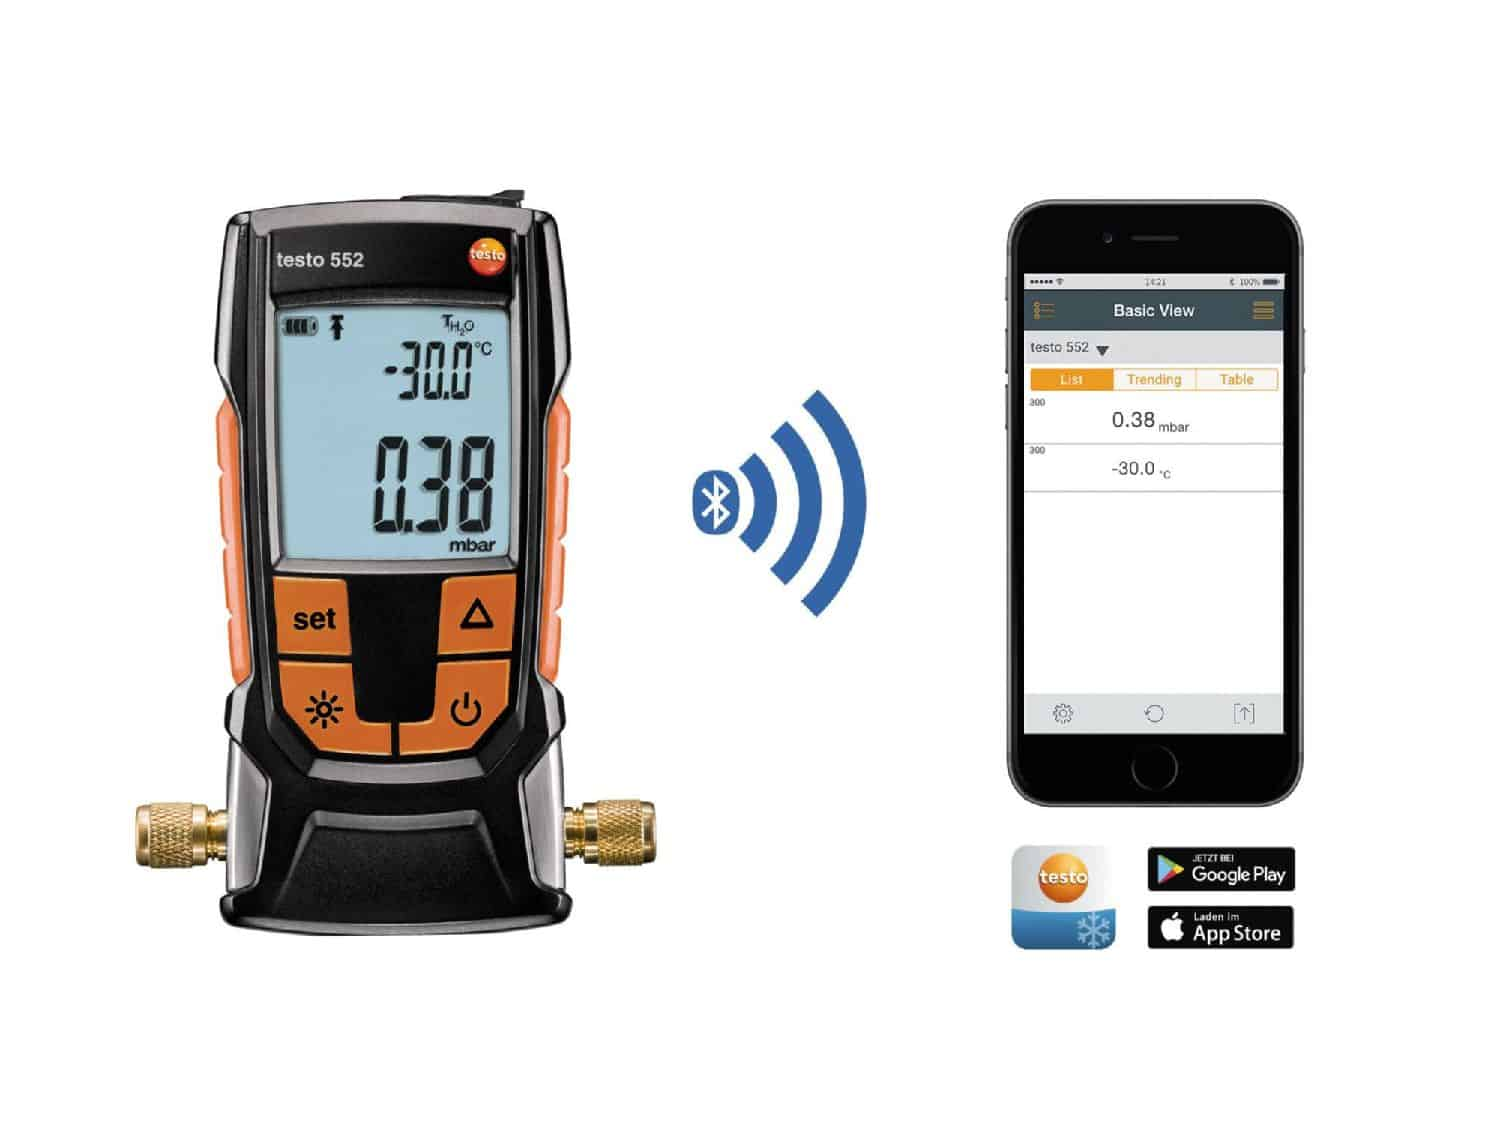 Testo_552_Digital Vacuum Gauge_HVACR - Digital Vacuum Gauge with Bluetooth